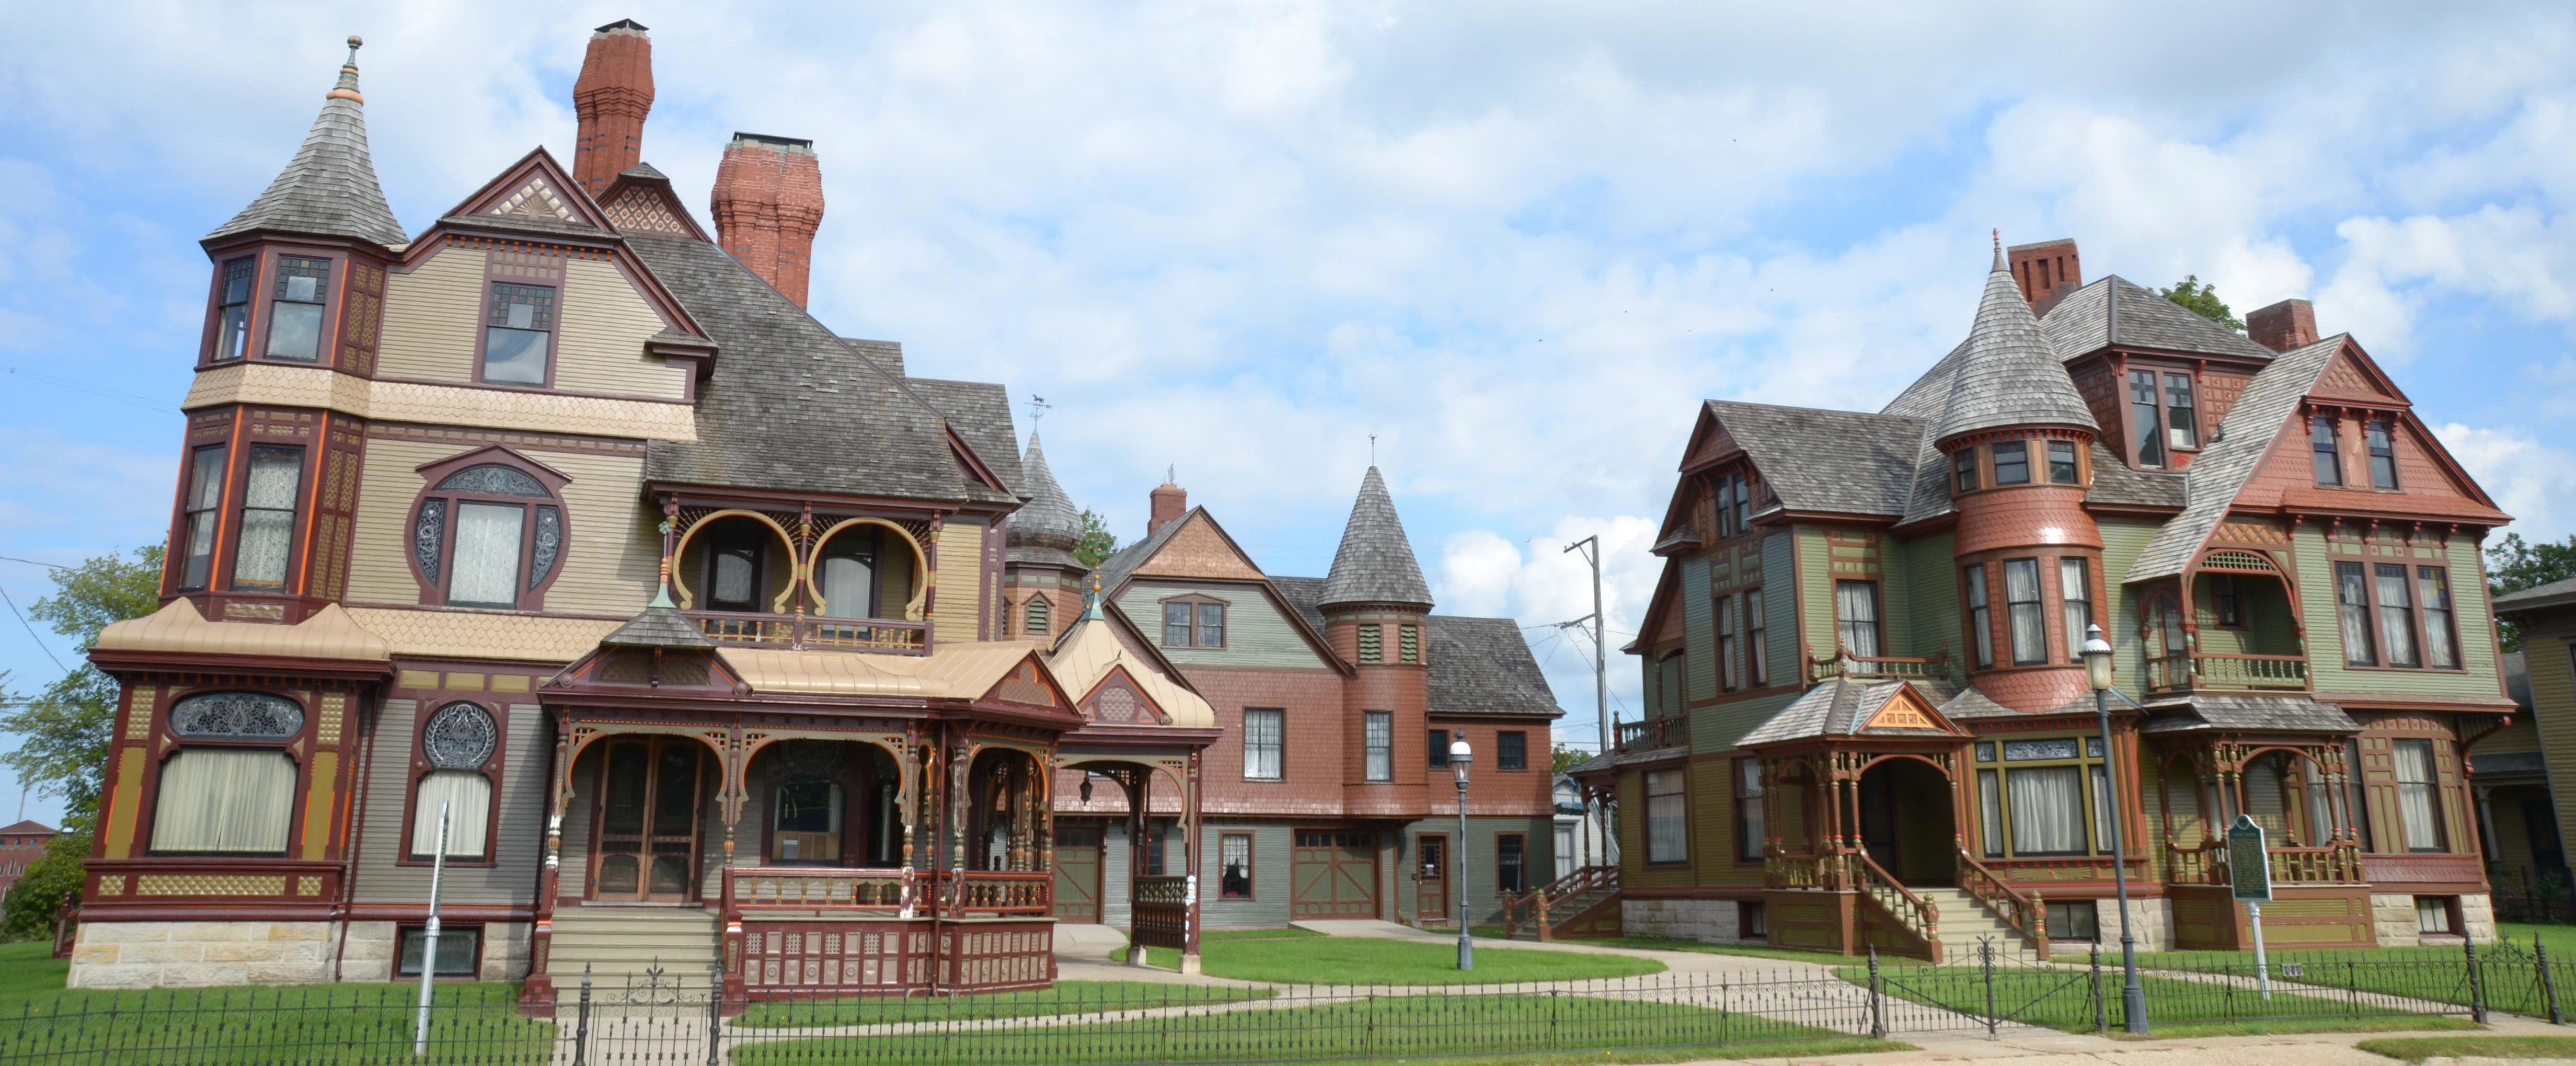 Hackley-and-Hume-Homes-Cropped-2